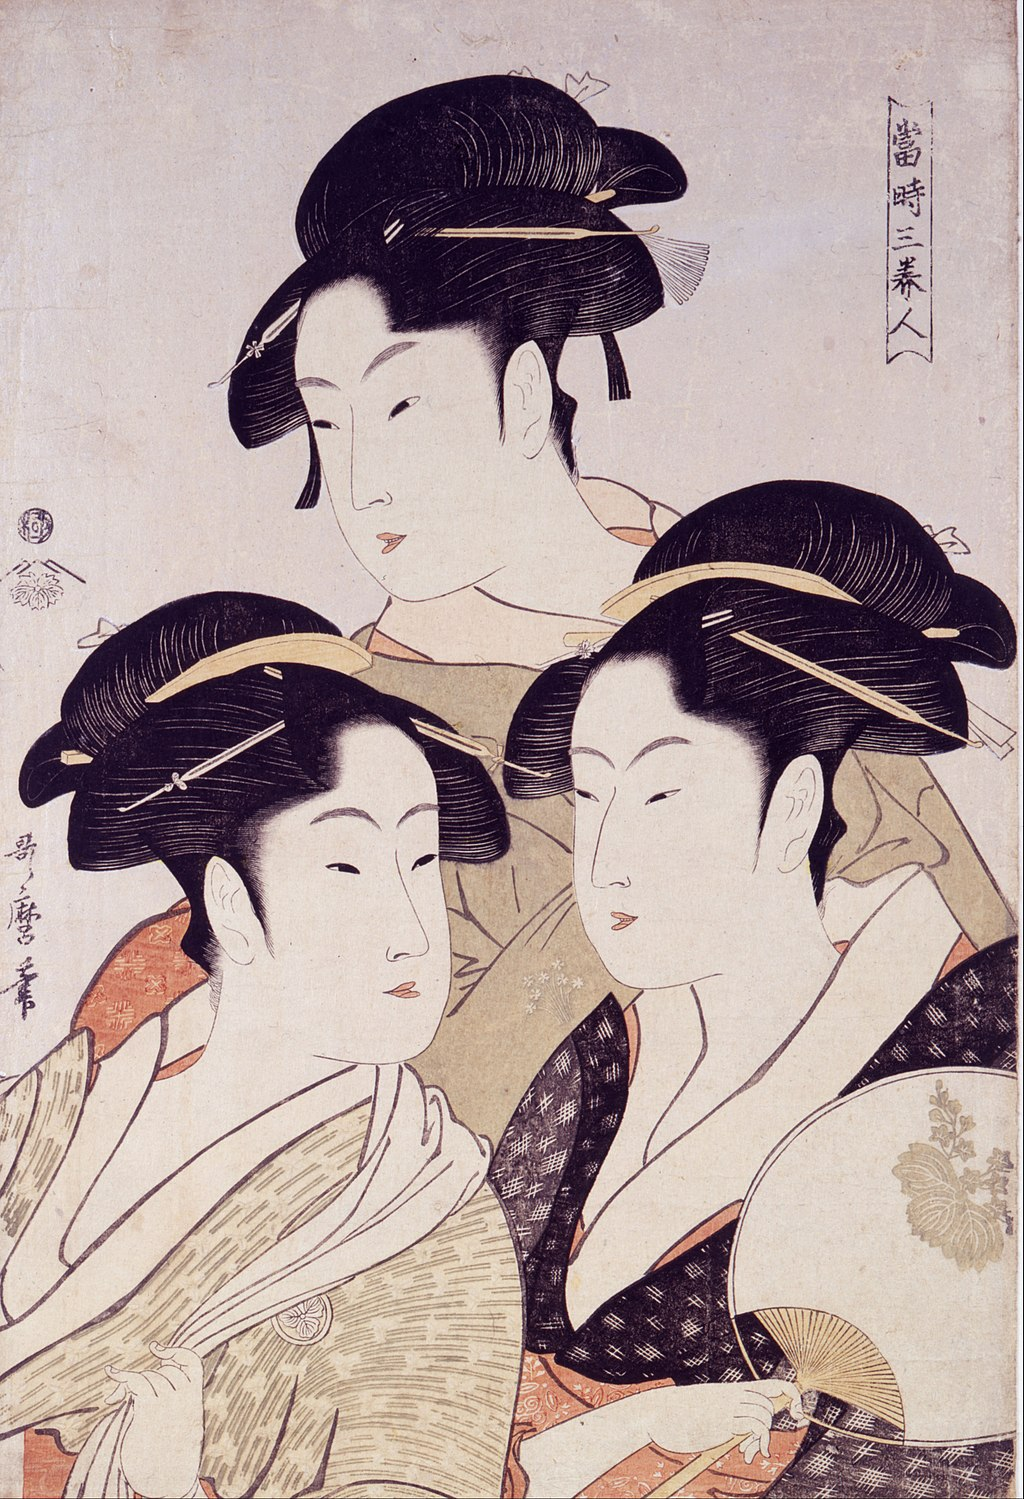 Kitagawa Utamaro - Toji san bijin (Three Beauties of the Present Day)From Bijin-ga (Pictures of Beautiful Women), published by Tsutaya Juzaburo - Google Art Project